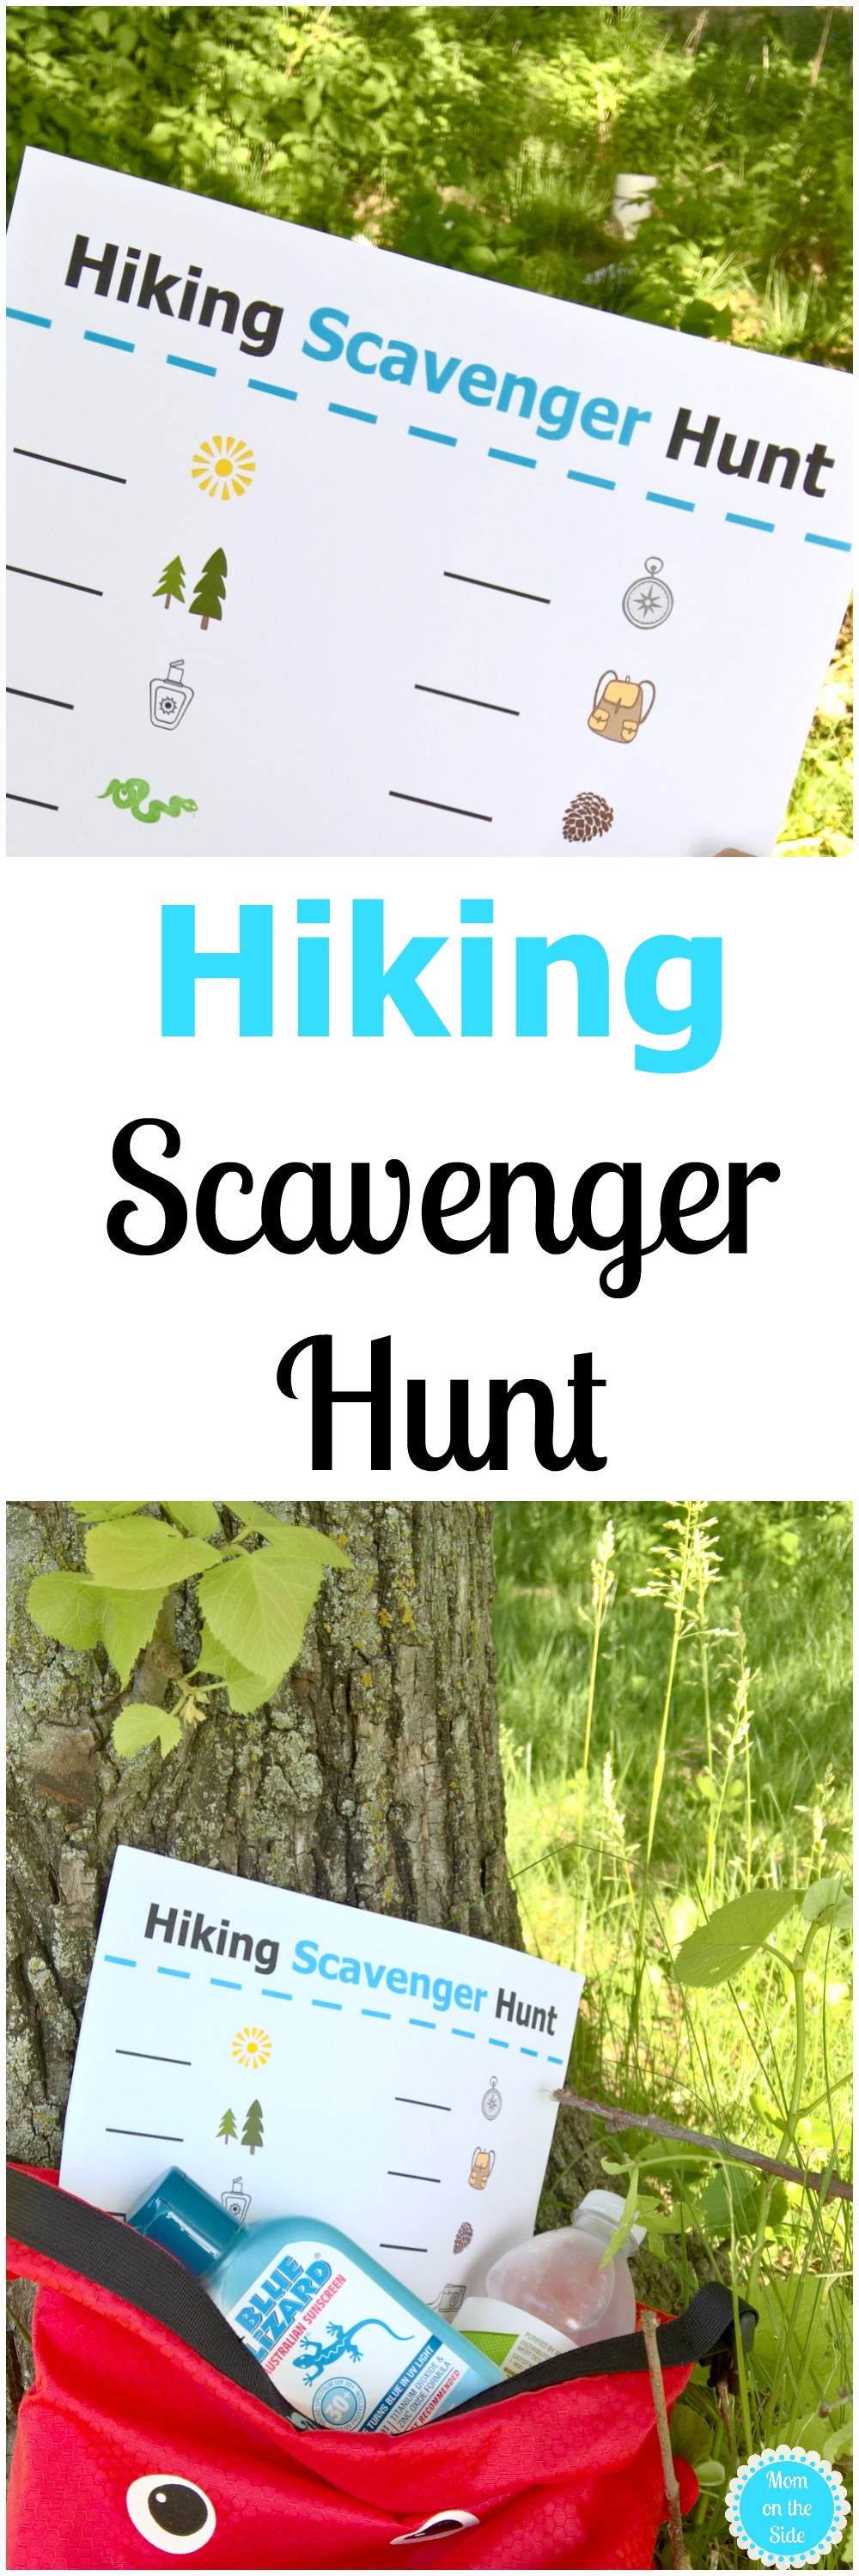 Hiking Scavenger Hunt Printable